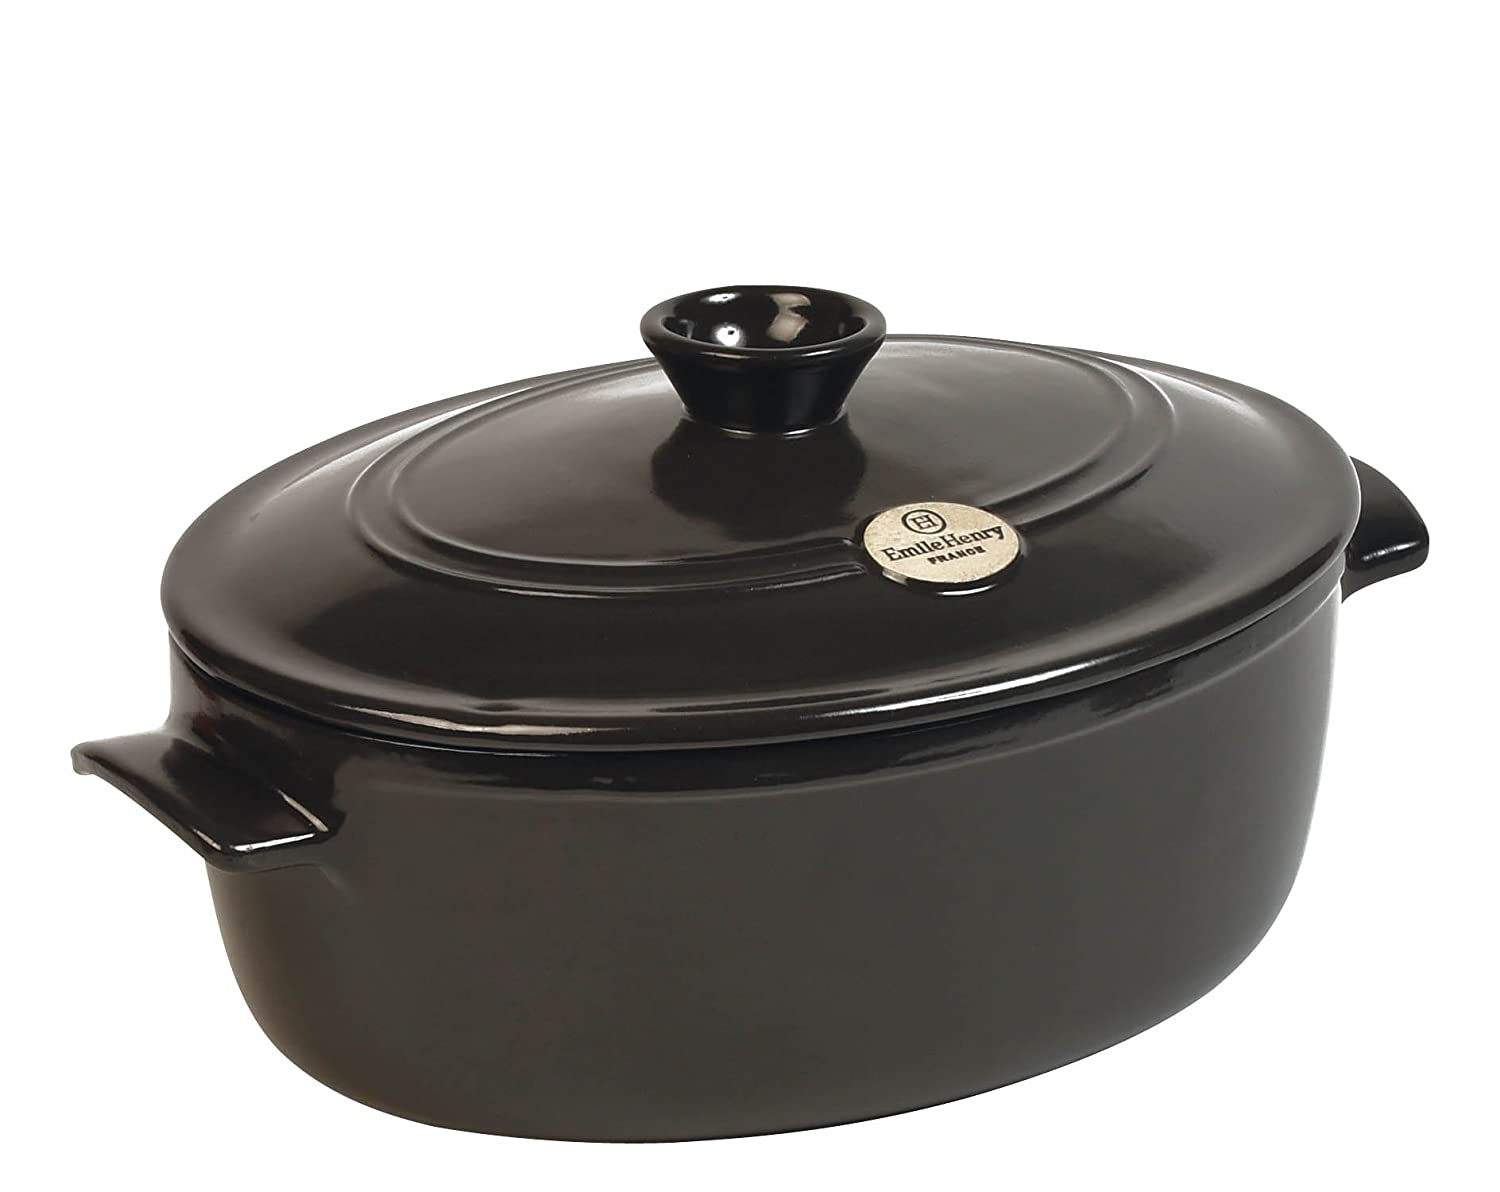 Emile Henry Made In France Flame Oval Stewpot Dutch Oven, 6.3 quart, Charcoal